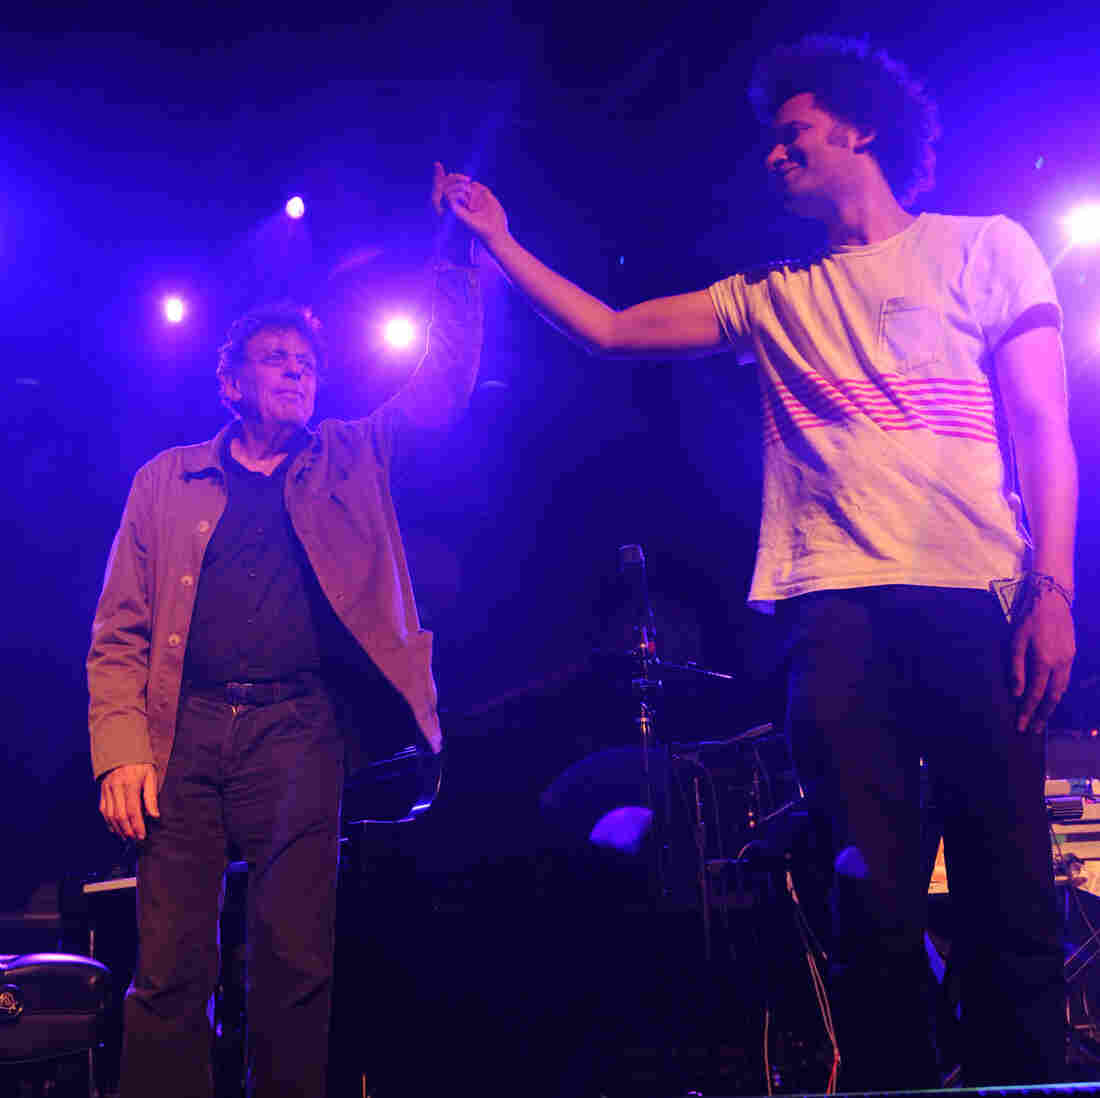 Philip Glass and Tyondai Braxton after their performance at All Tomorrow's Parties in New York City.